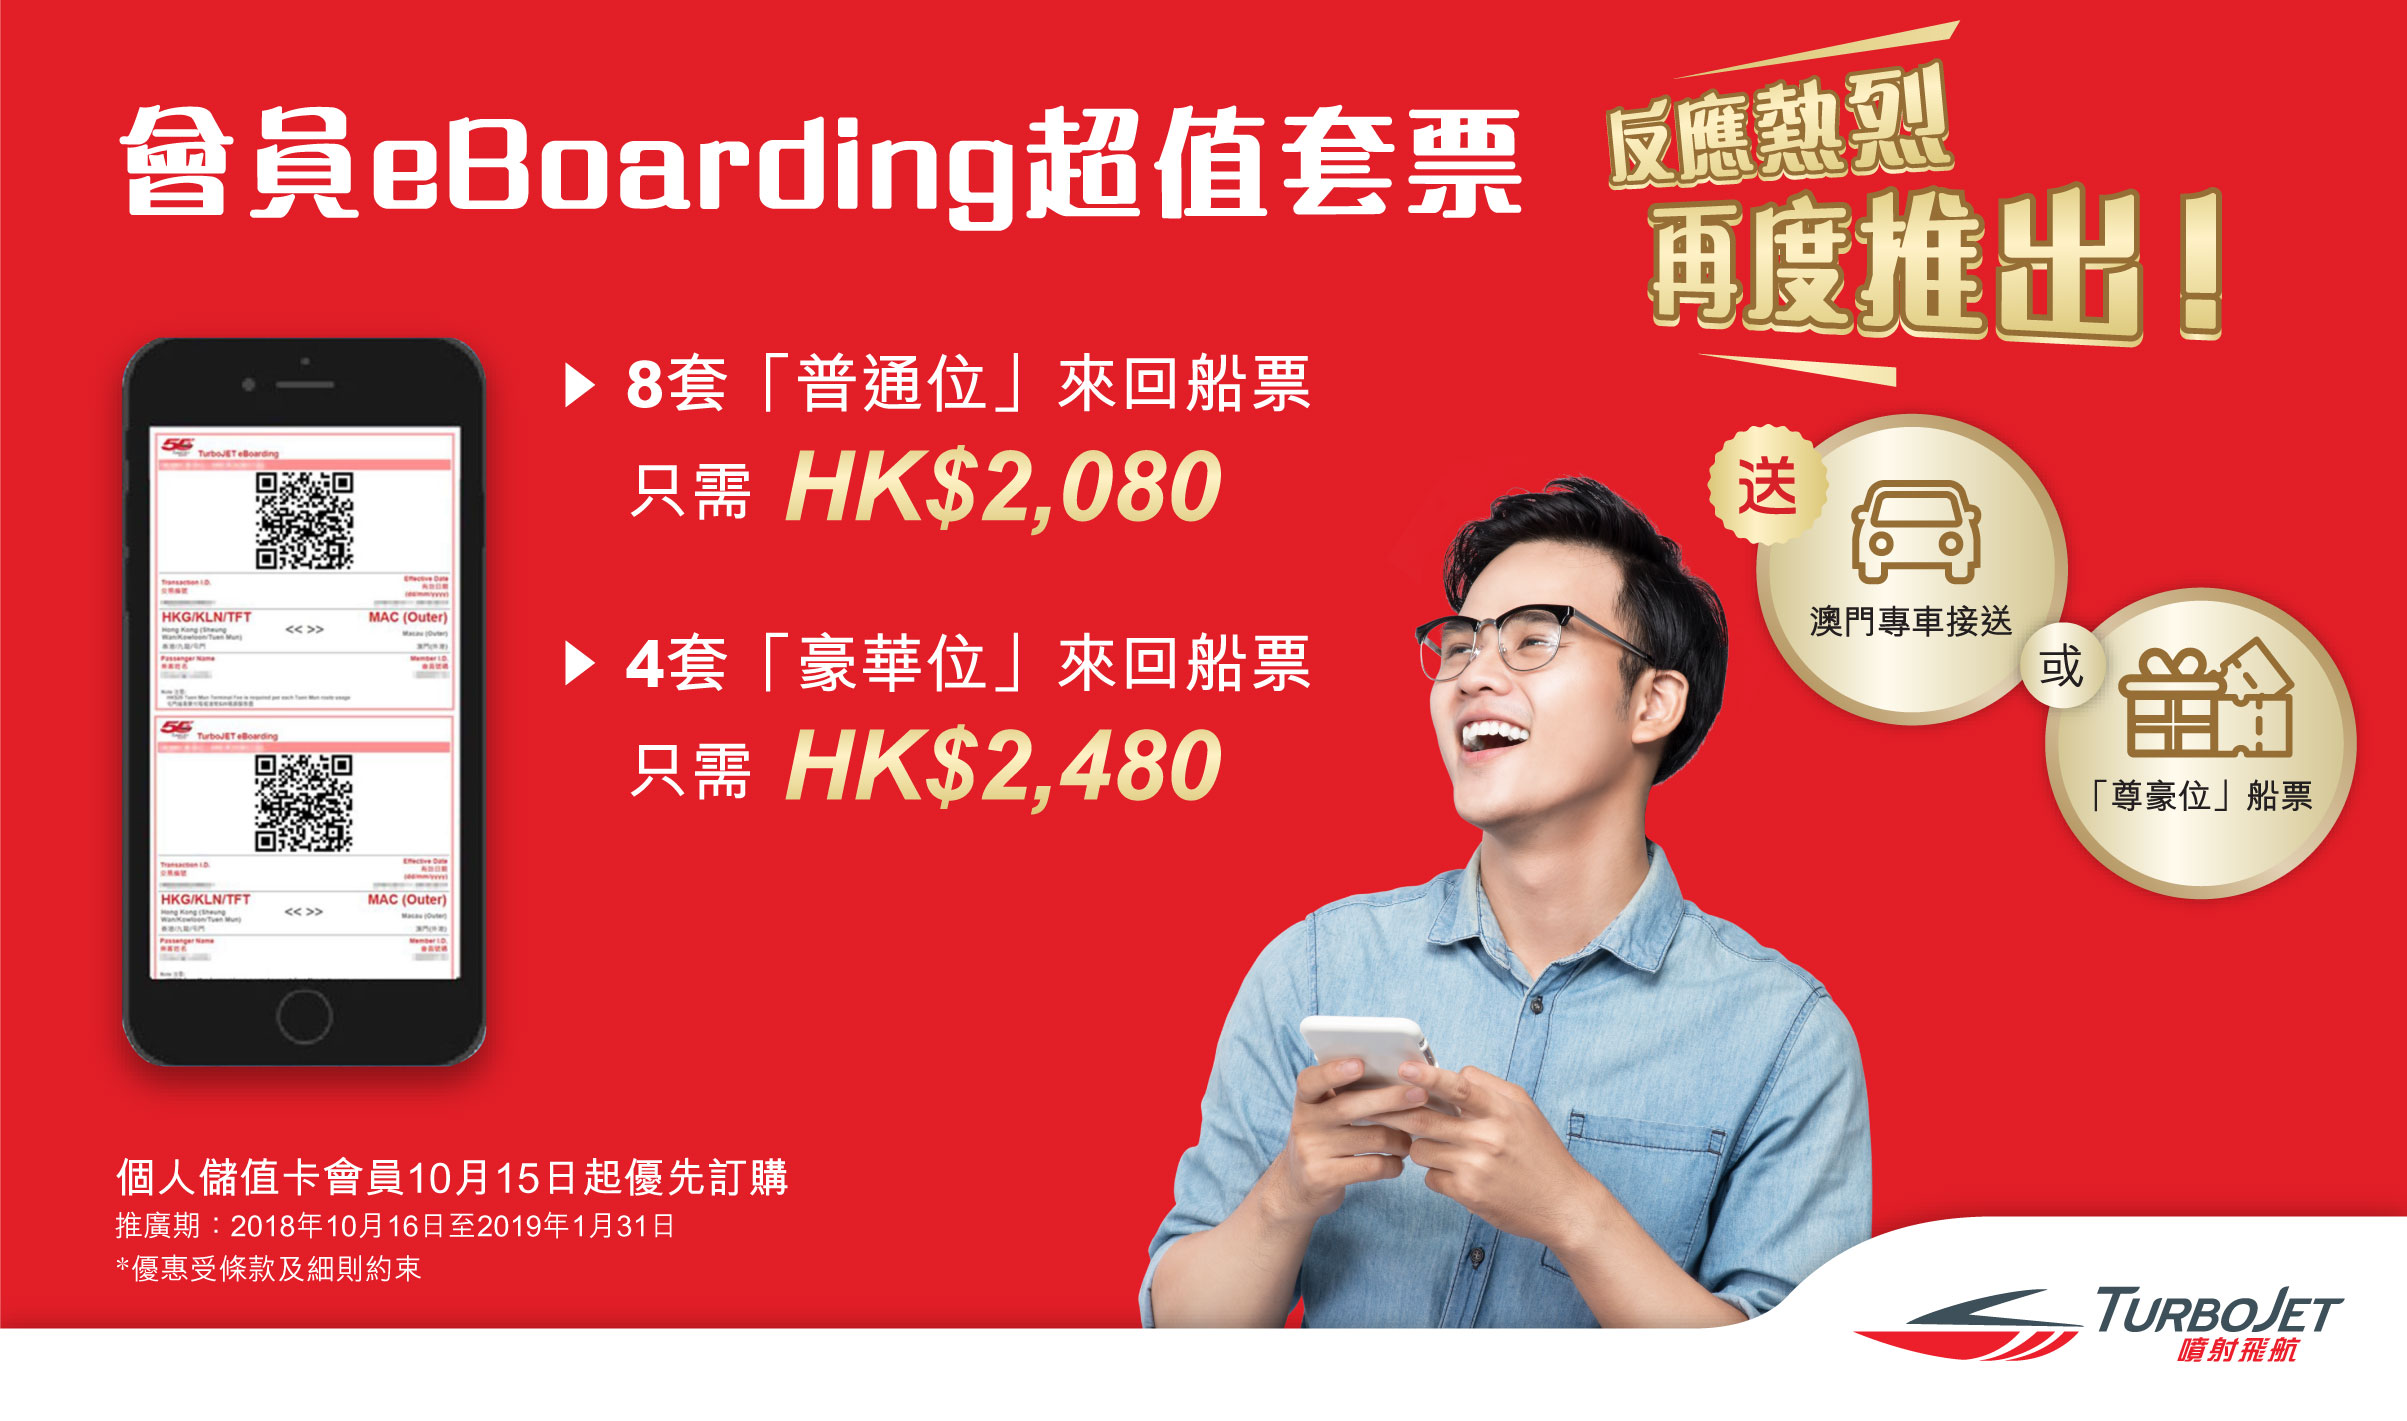 Turbojet Ticket  Air Asia Periode 2018 2019 Promotions News